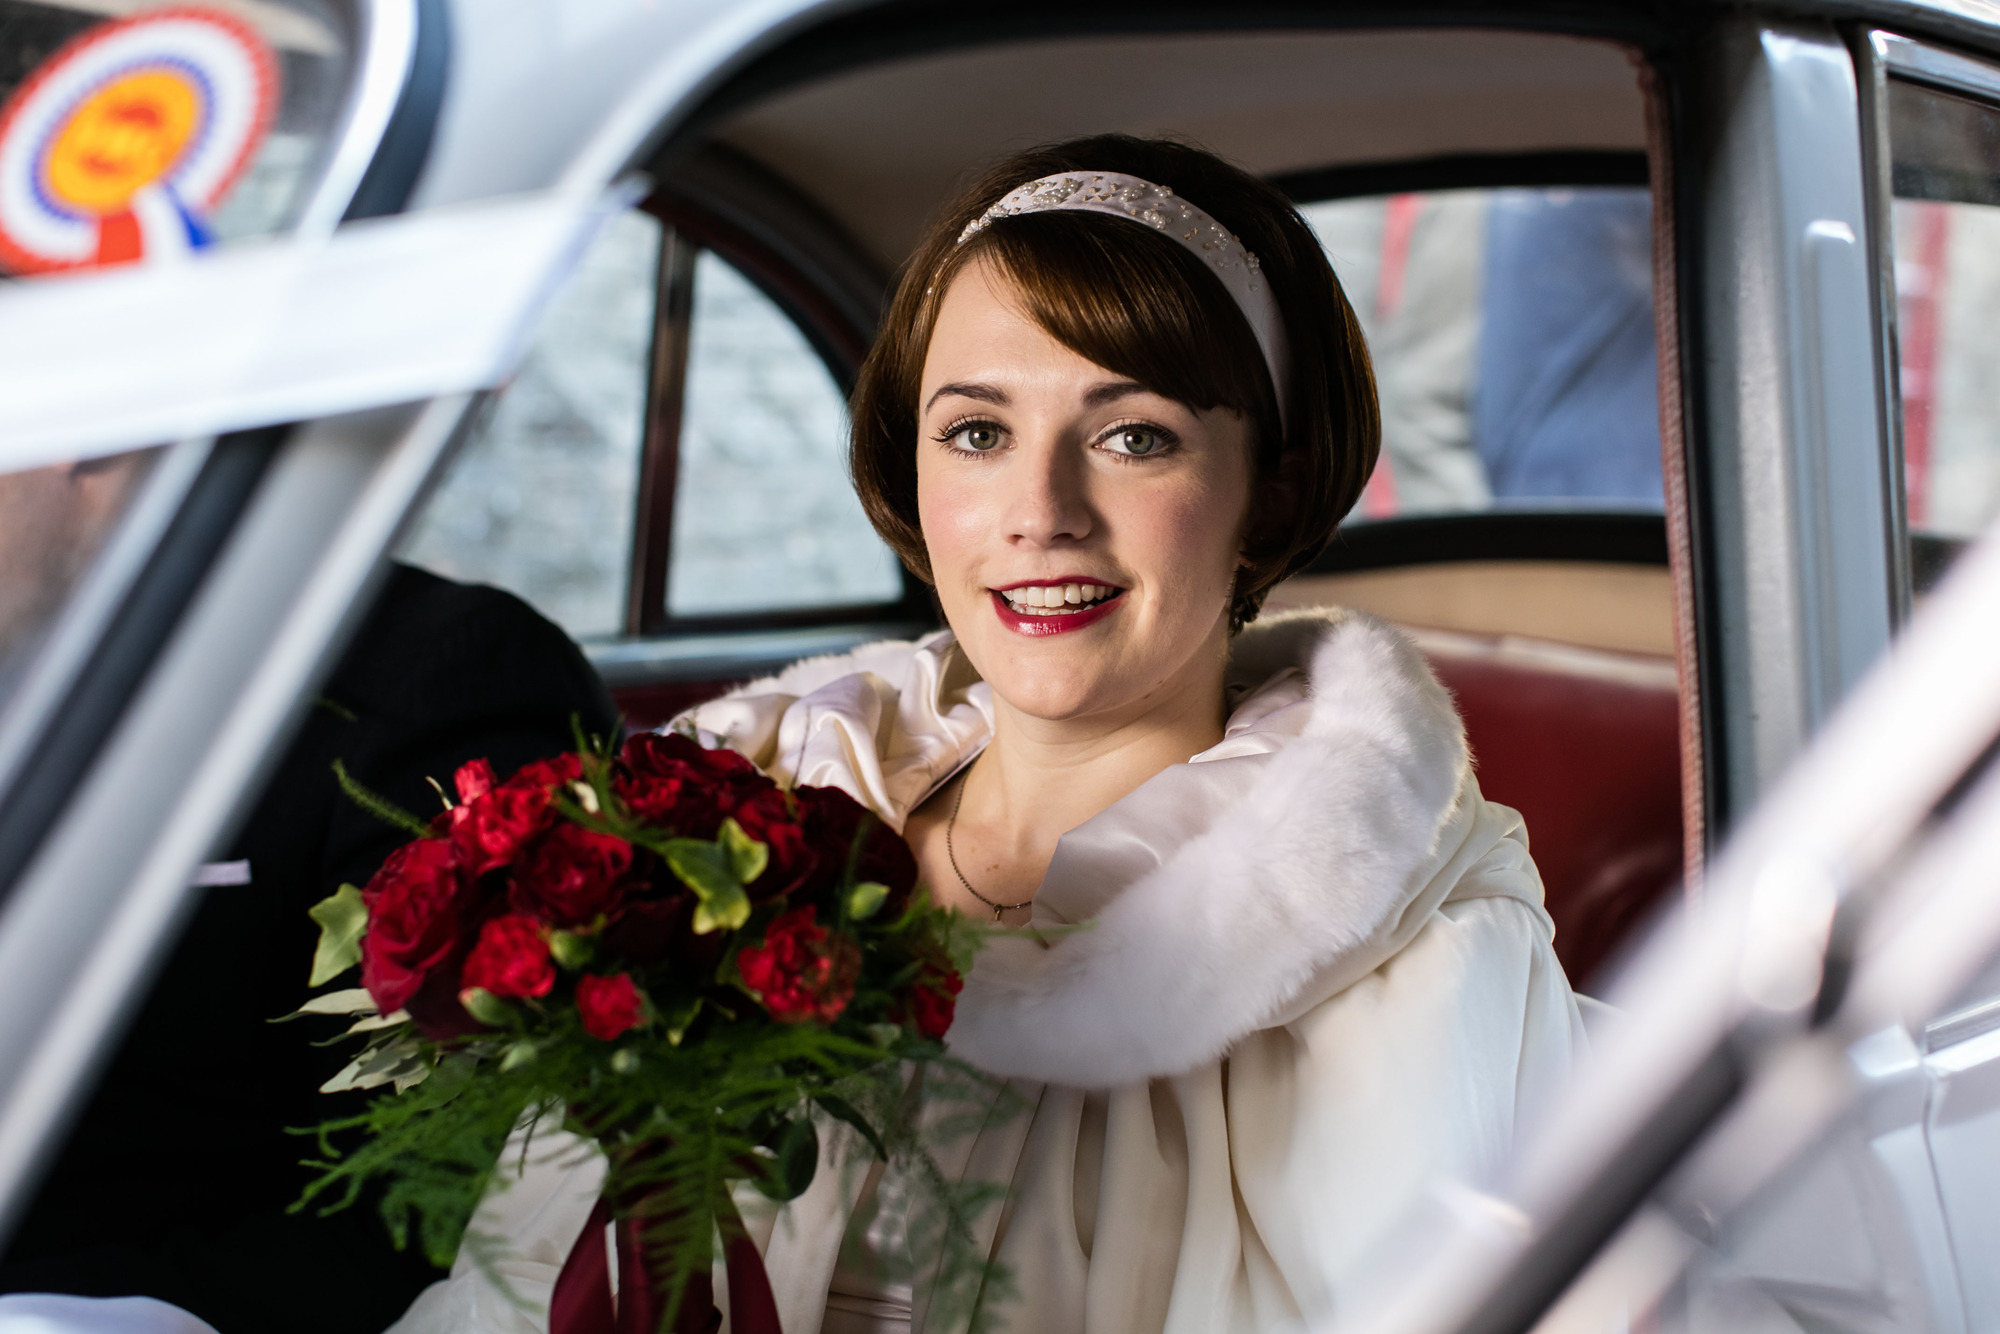 Nurse Barbara Gilbert marries Tom Hereward in season 6 episode 8 of Call the Midwife